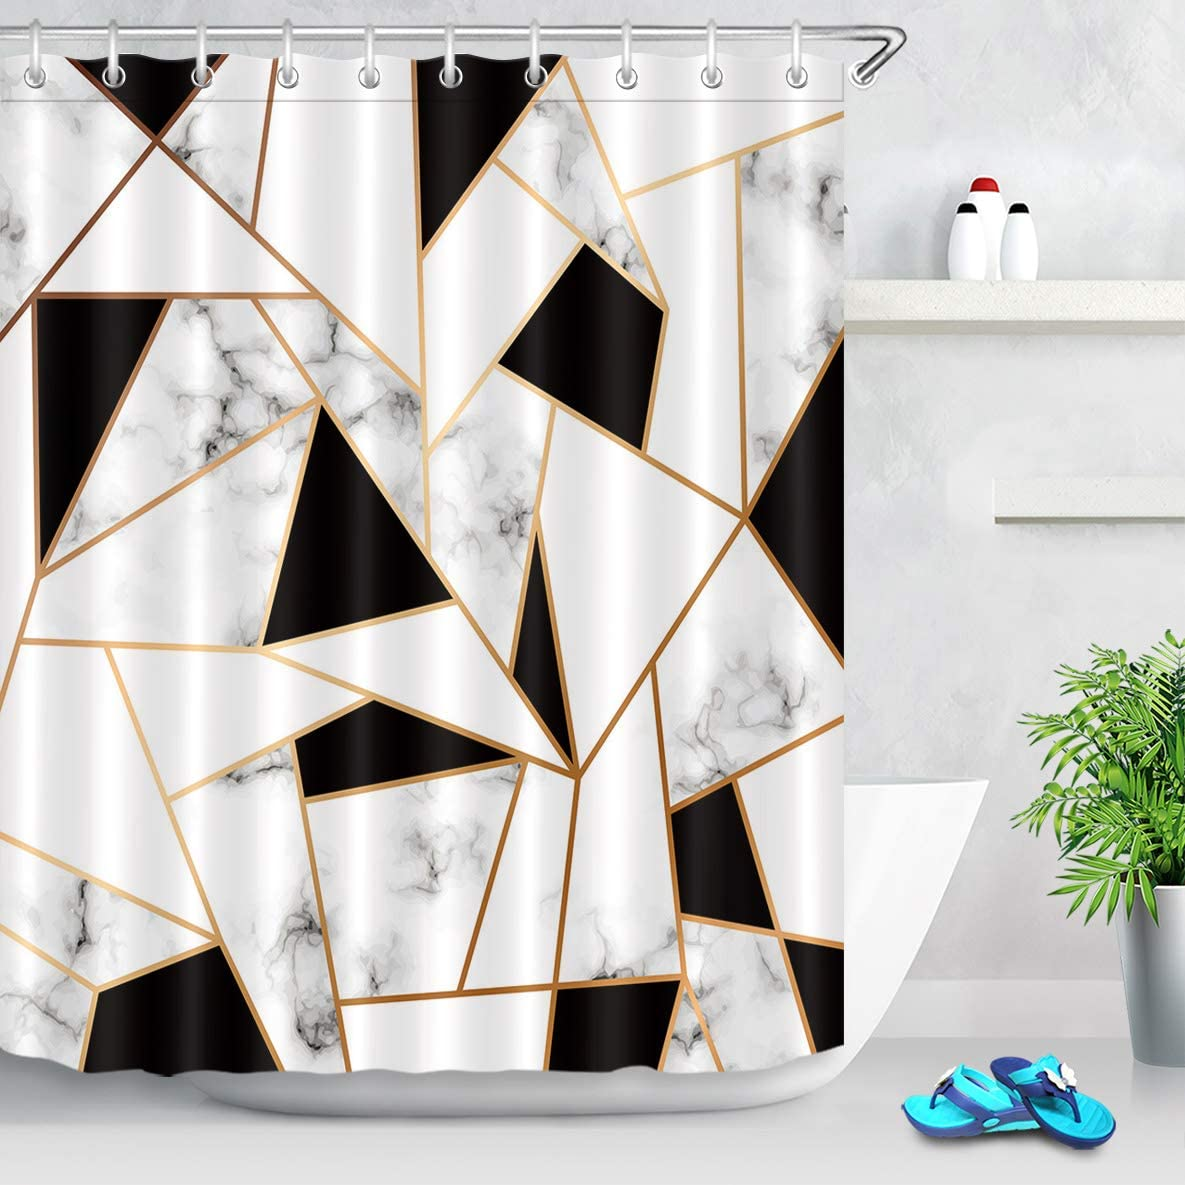 LB Abstract Geometric Marble Shower Curtain Black and White Cracked Pattern Marble Texture Bathroom Curtain Set 72x72 Inch Waterproof Fabric Bathtub Decor with 12 Hooks